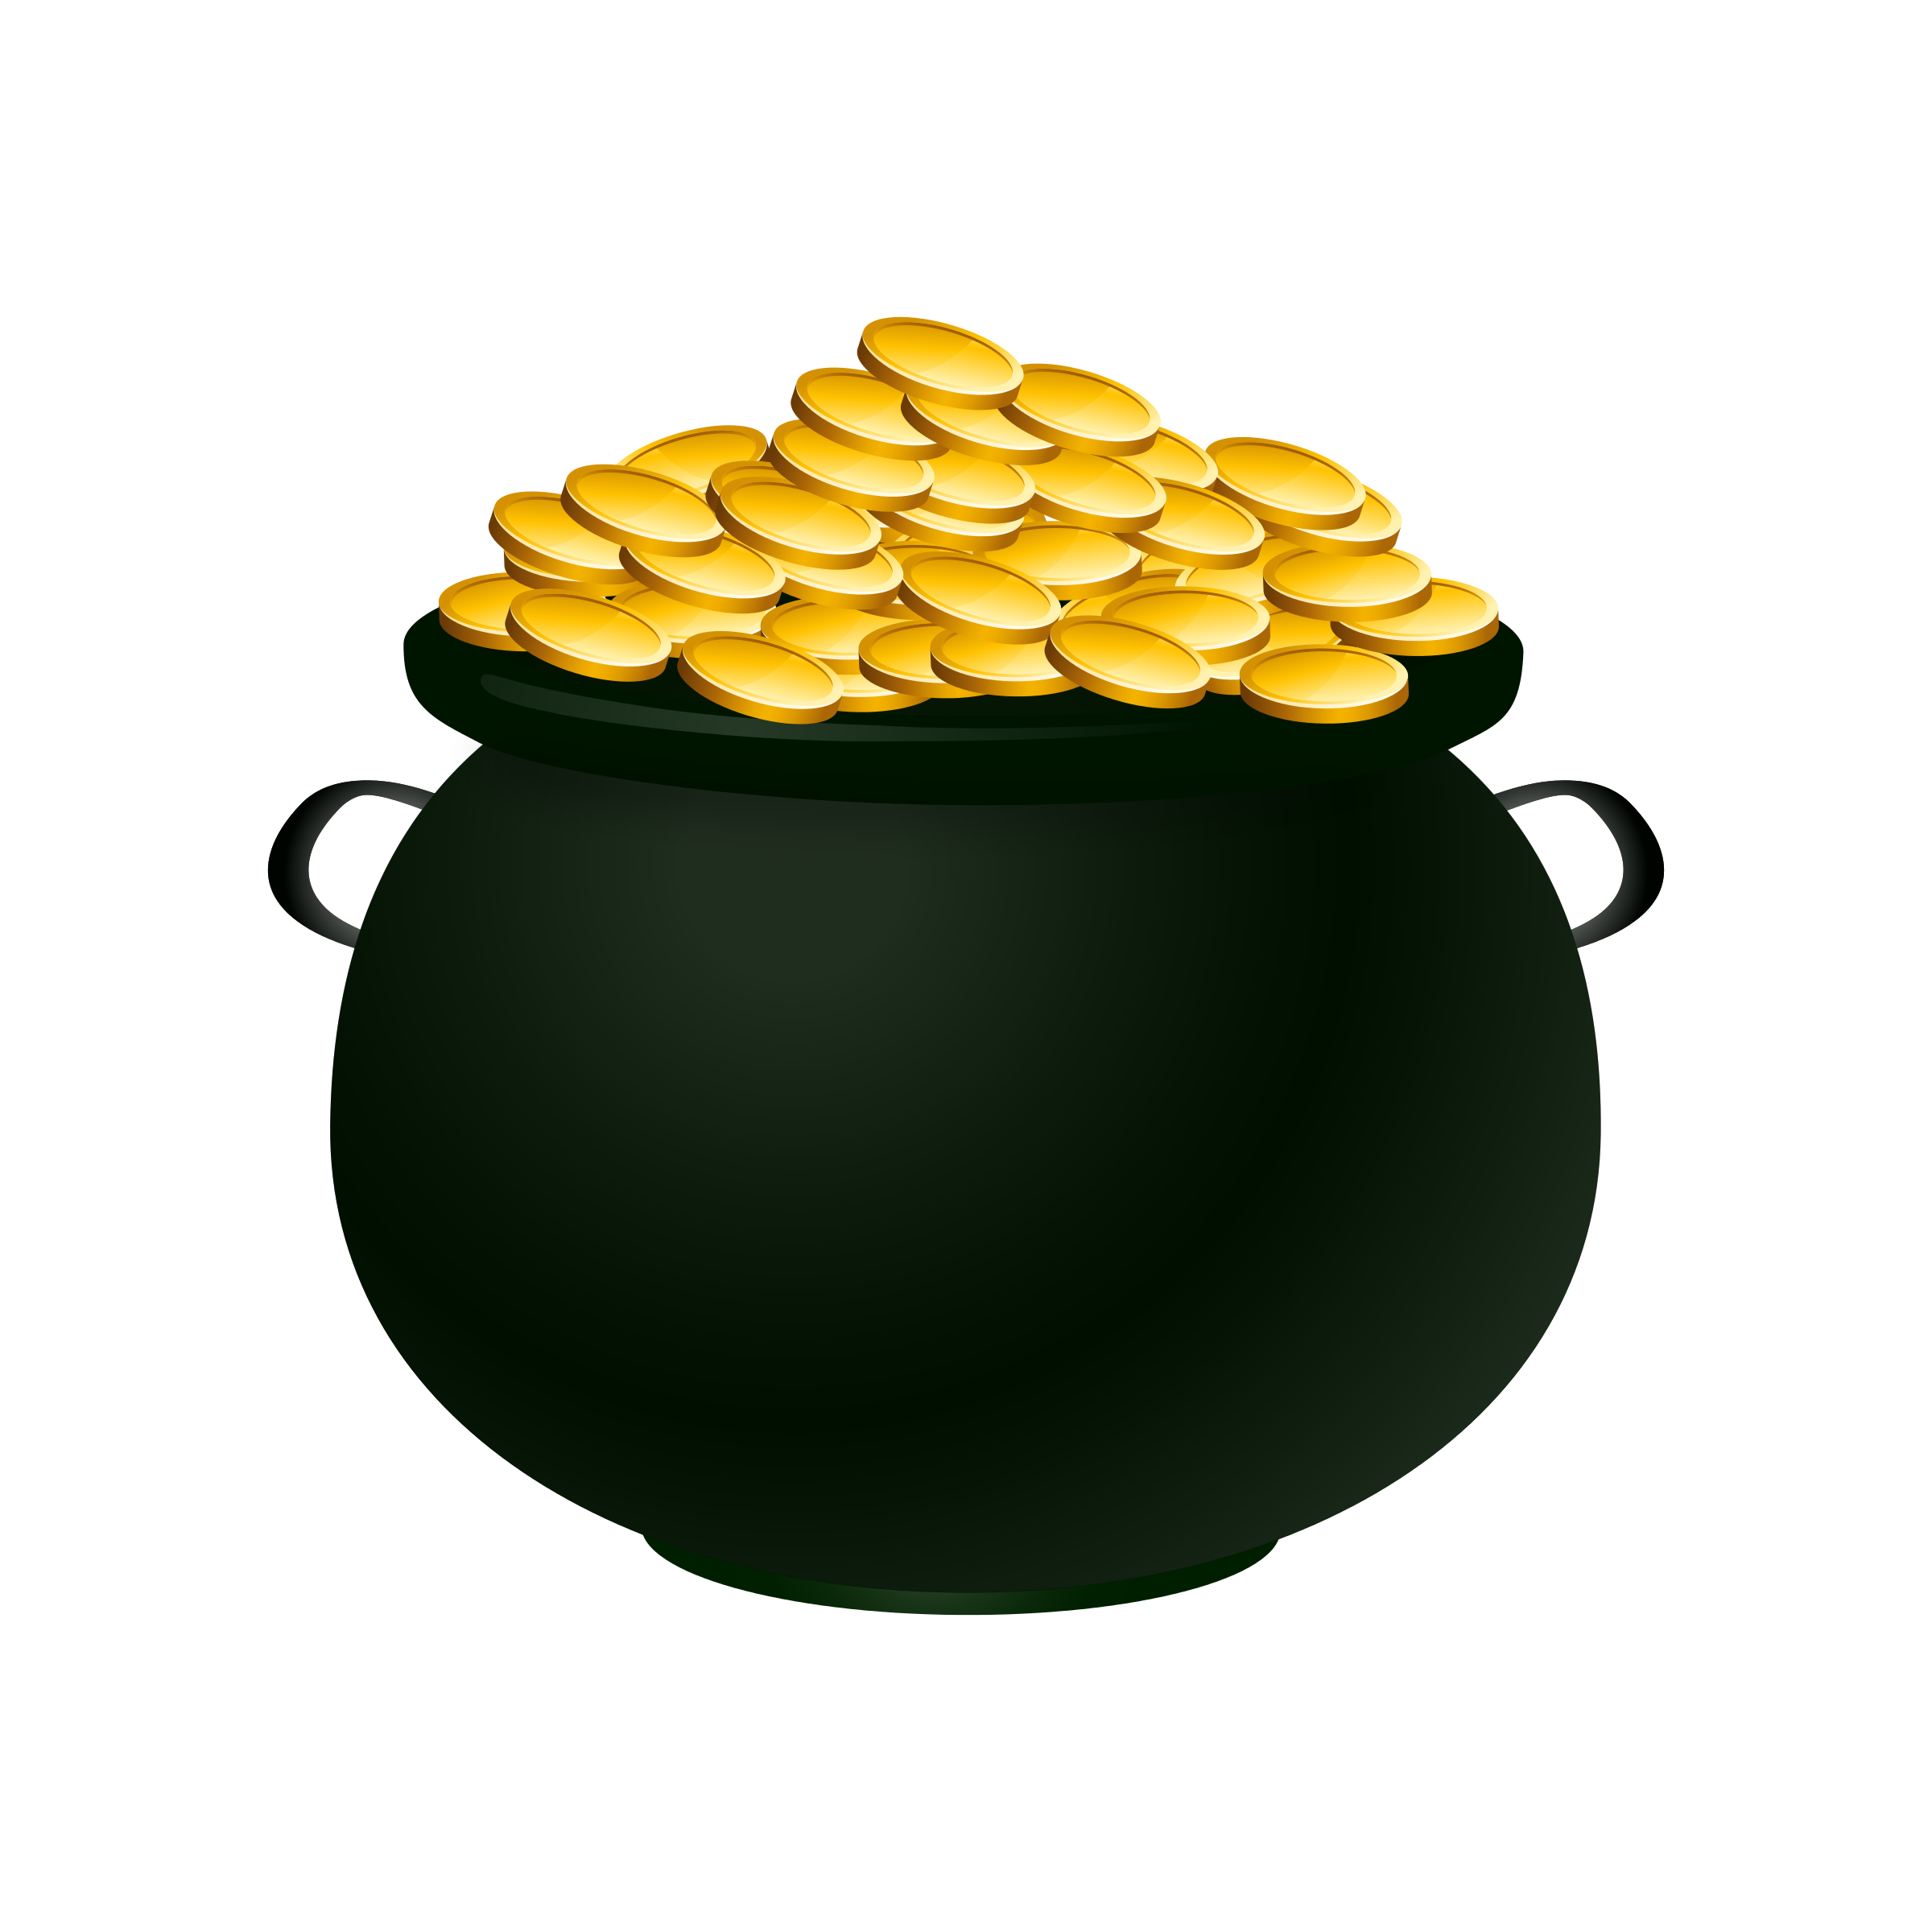 2400x2400 Irish Clipart Gold Coin